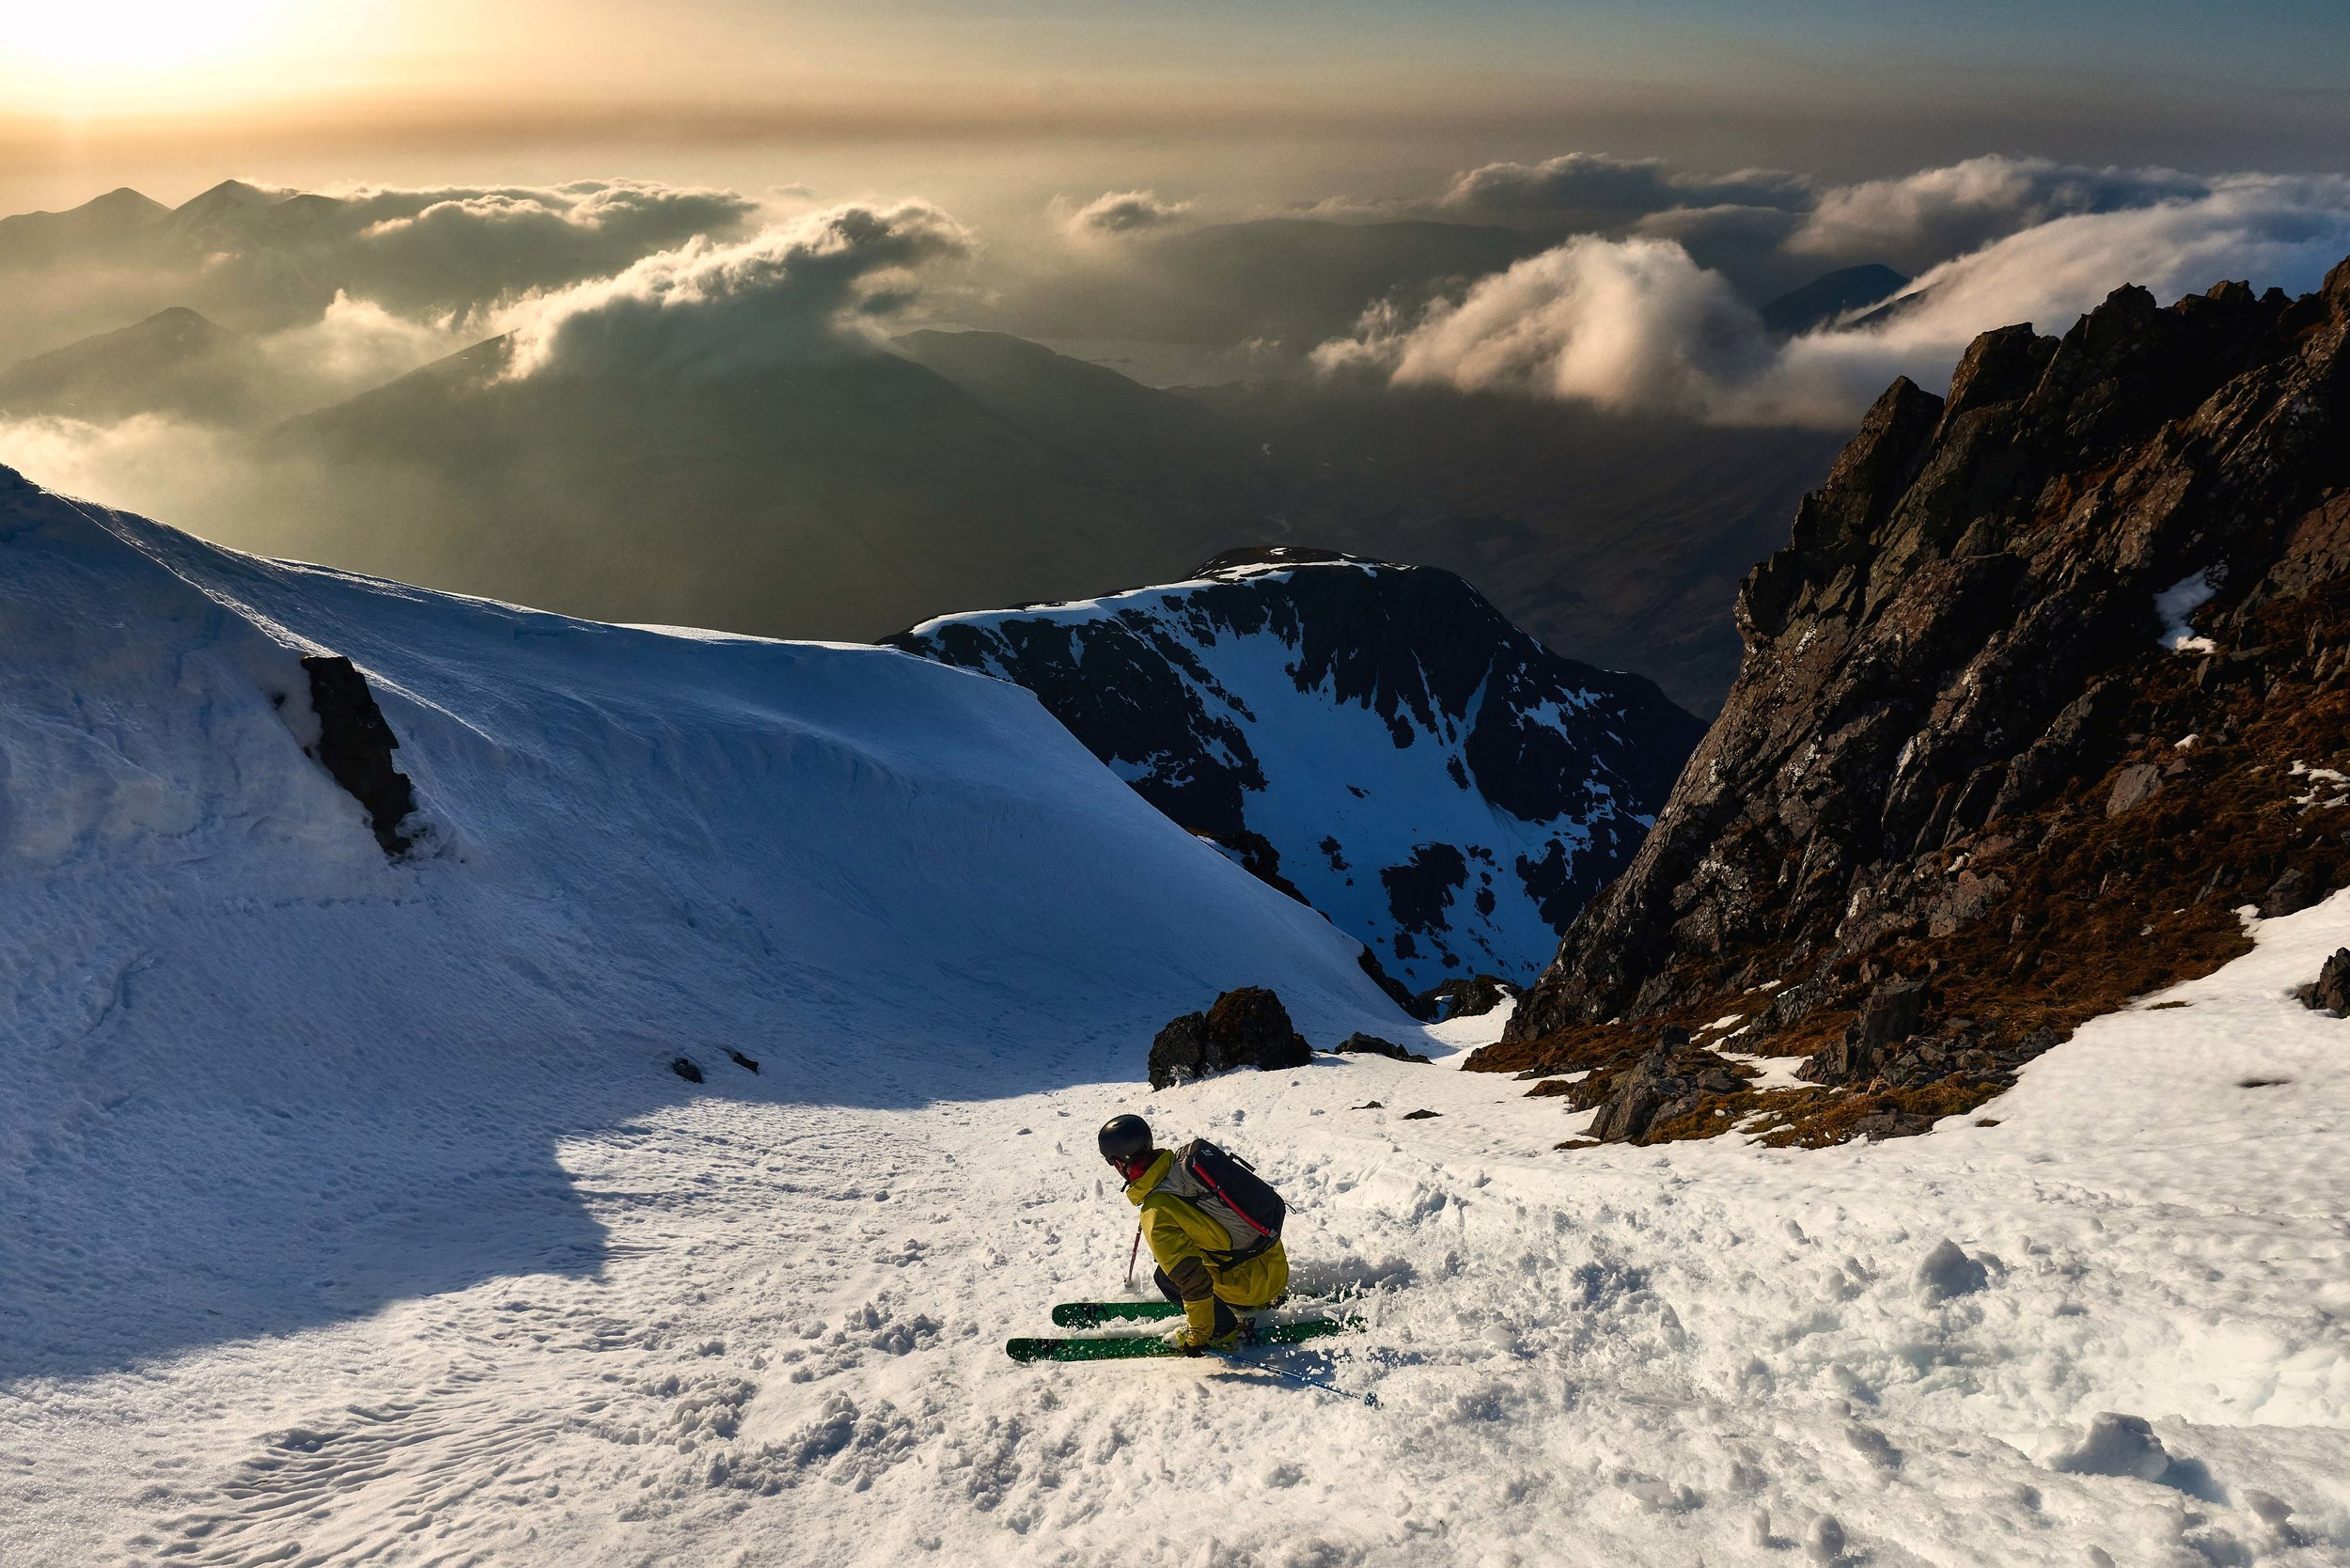 Skis on from the summit and straight into the relatively mellow top section of Summit Gully. The fun/slightly intimidating thing about this line (depending on your point of view) is you can't see most of it from the top, so unless you've climbed it beforehand then you've no idea what to expect from it on the way down (vs most Scottish gully lines which are either fairly short or dead straight so you can see down the length of them).